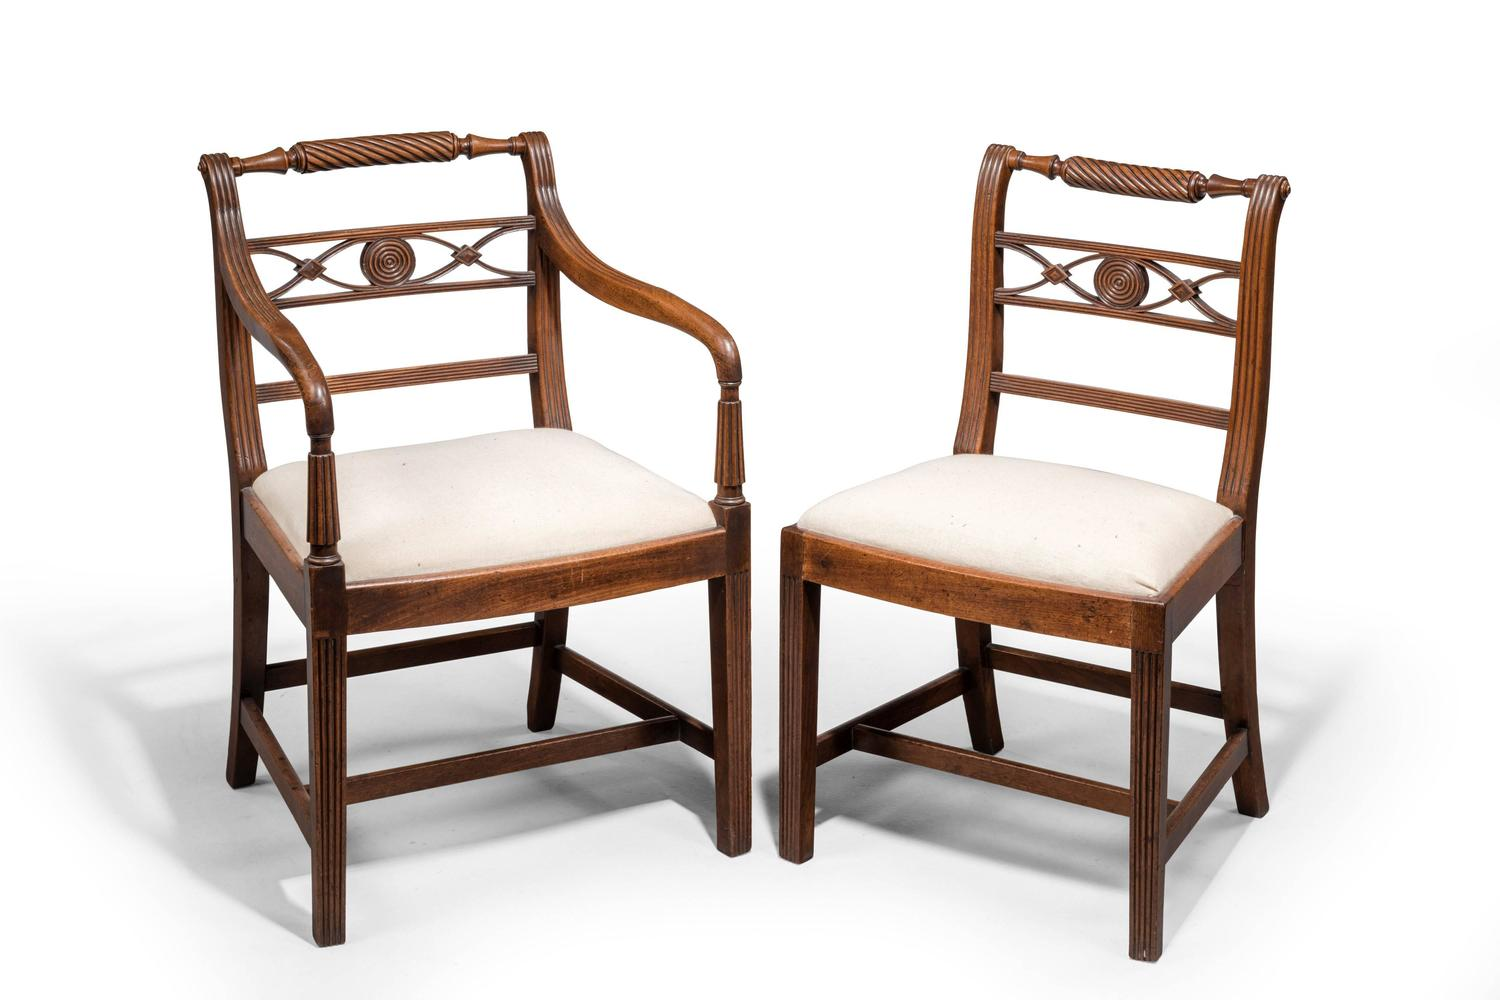 Set of Six Early 19th Century Mahogany Chairs For Sale at  : 734103z from www.1stdibs.com size 1500 x 1000 jpeg 96kB